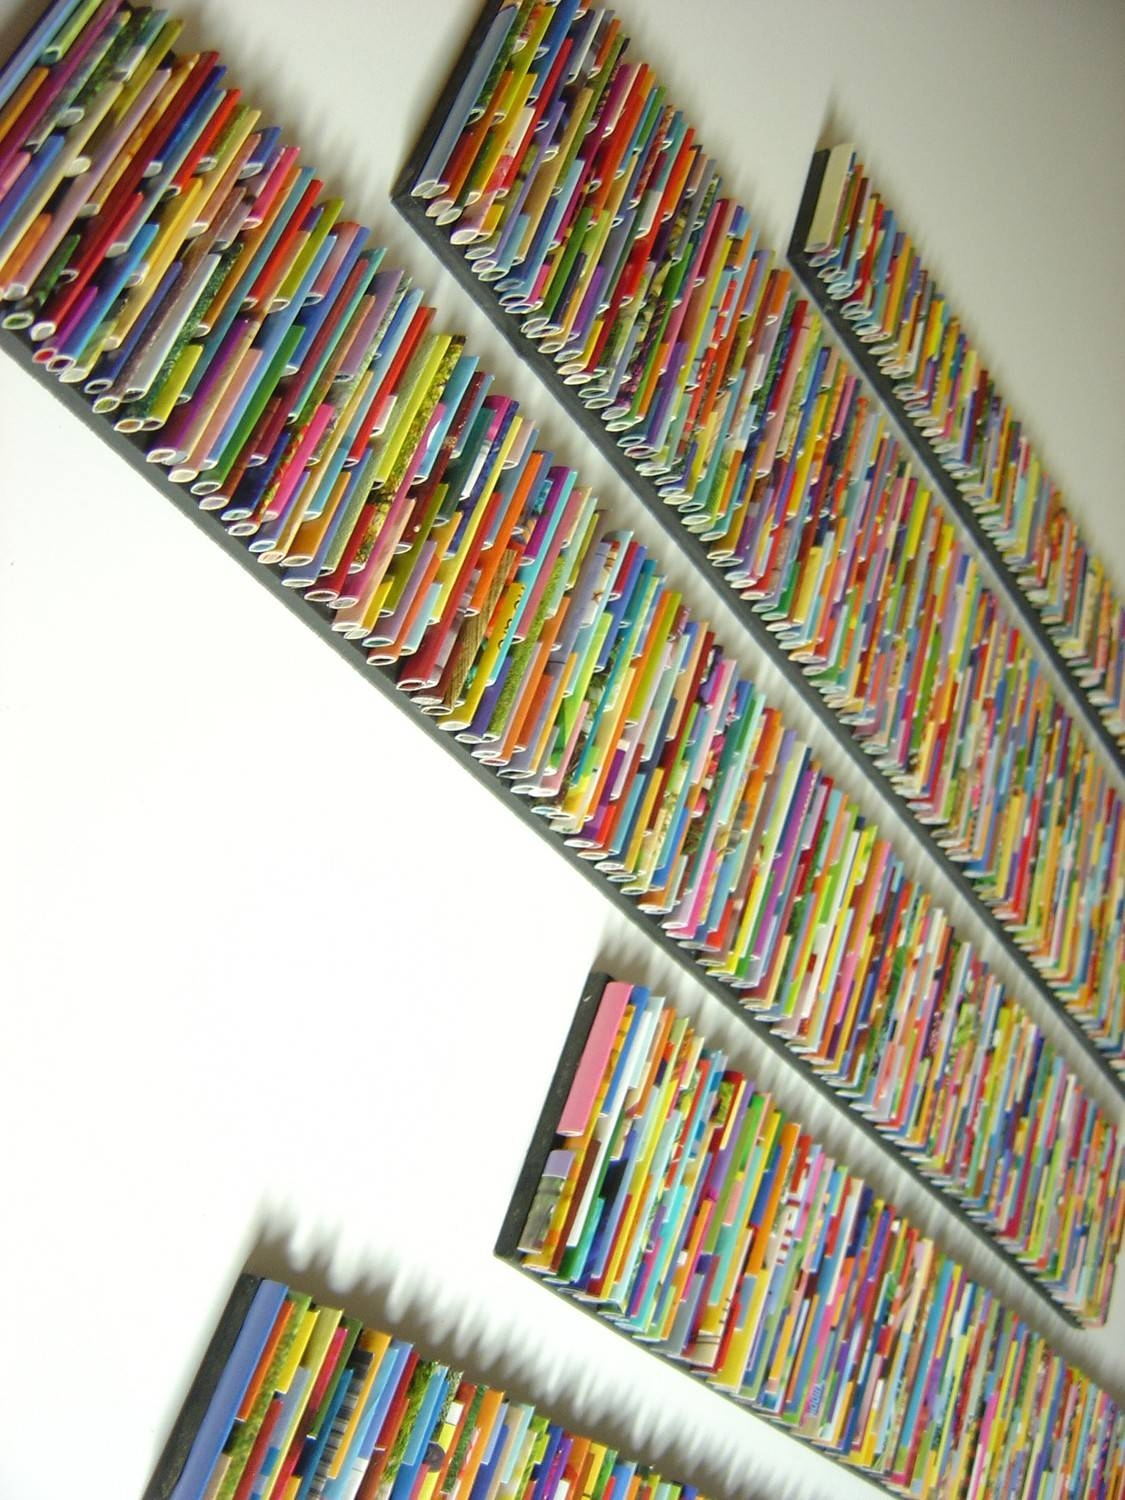 Barcode Wall Art Made From Recycled Magazines Colorful Art Pertaining To Most Recently Released Recycled Wall Art (View 4 of 30)